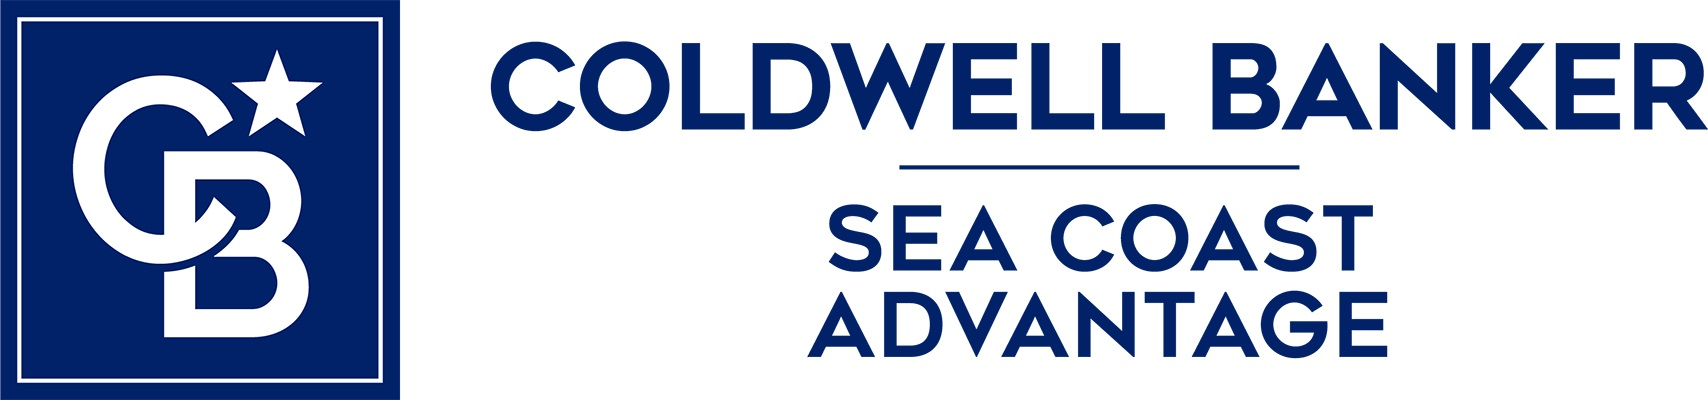 Tony Merlino - Coldwell Banker Sea Coast Advantage Realty